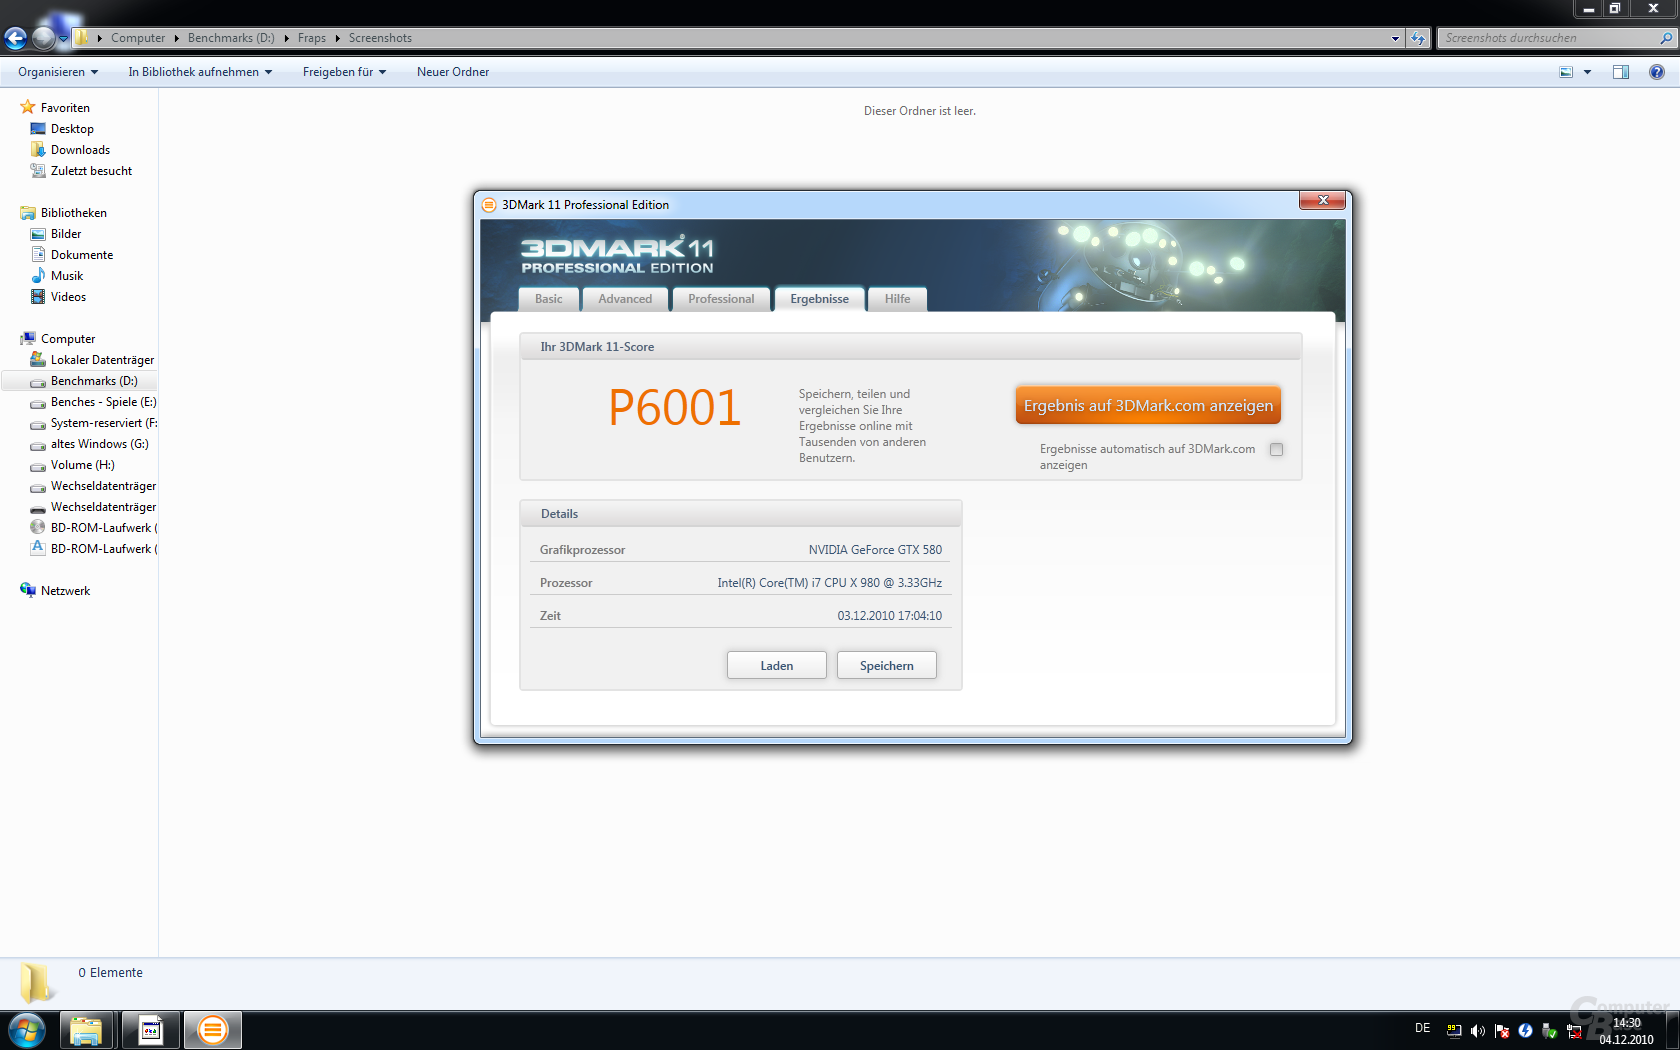 3DMark 11 Performance-Preset: Core i7 Extreme Edition 980X und GeForce GTX 580